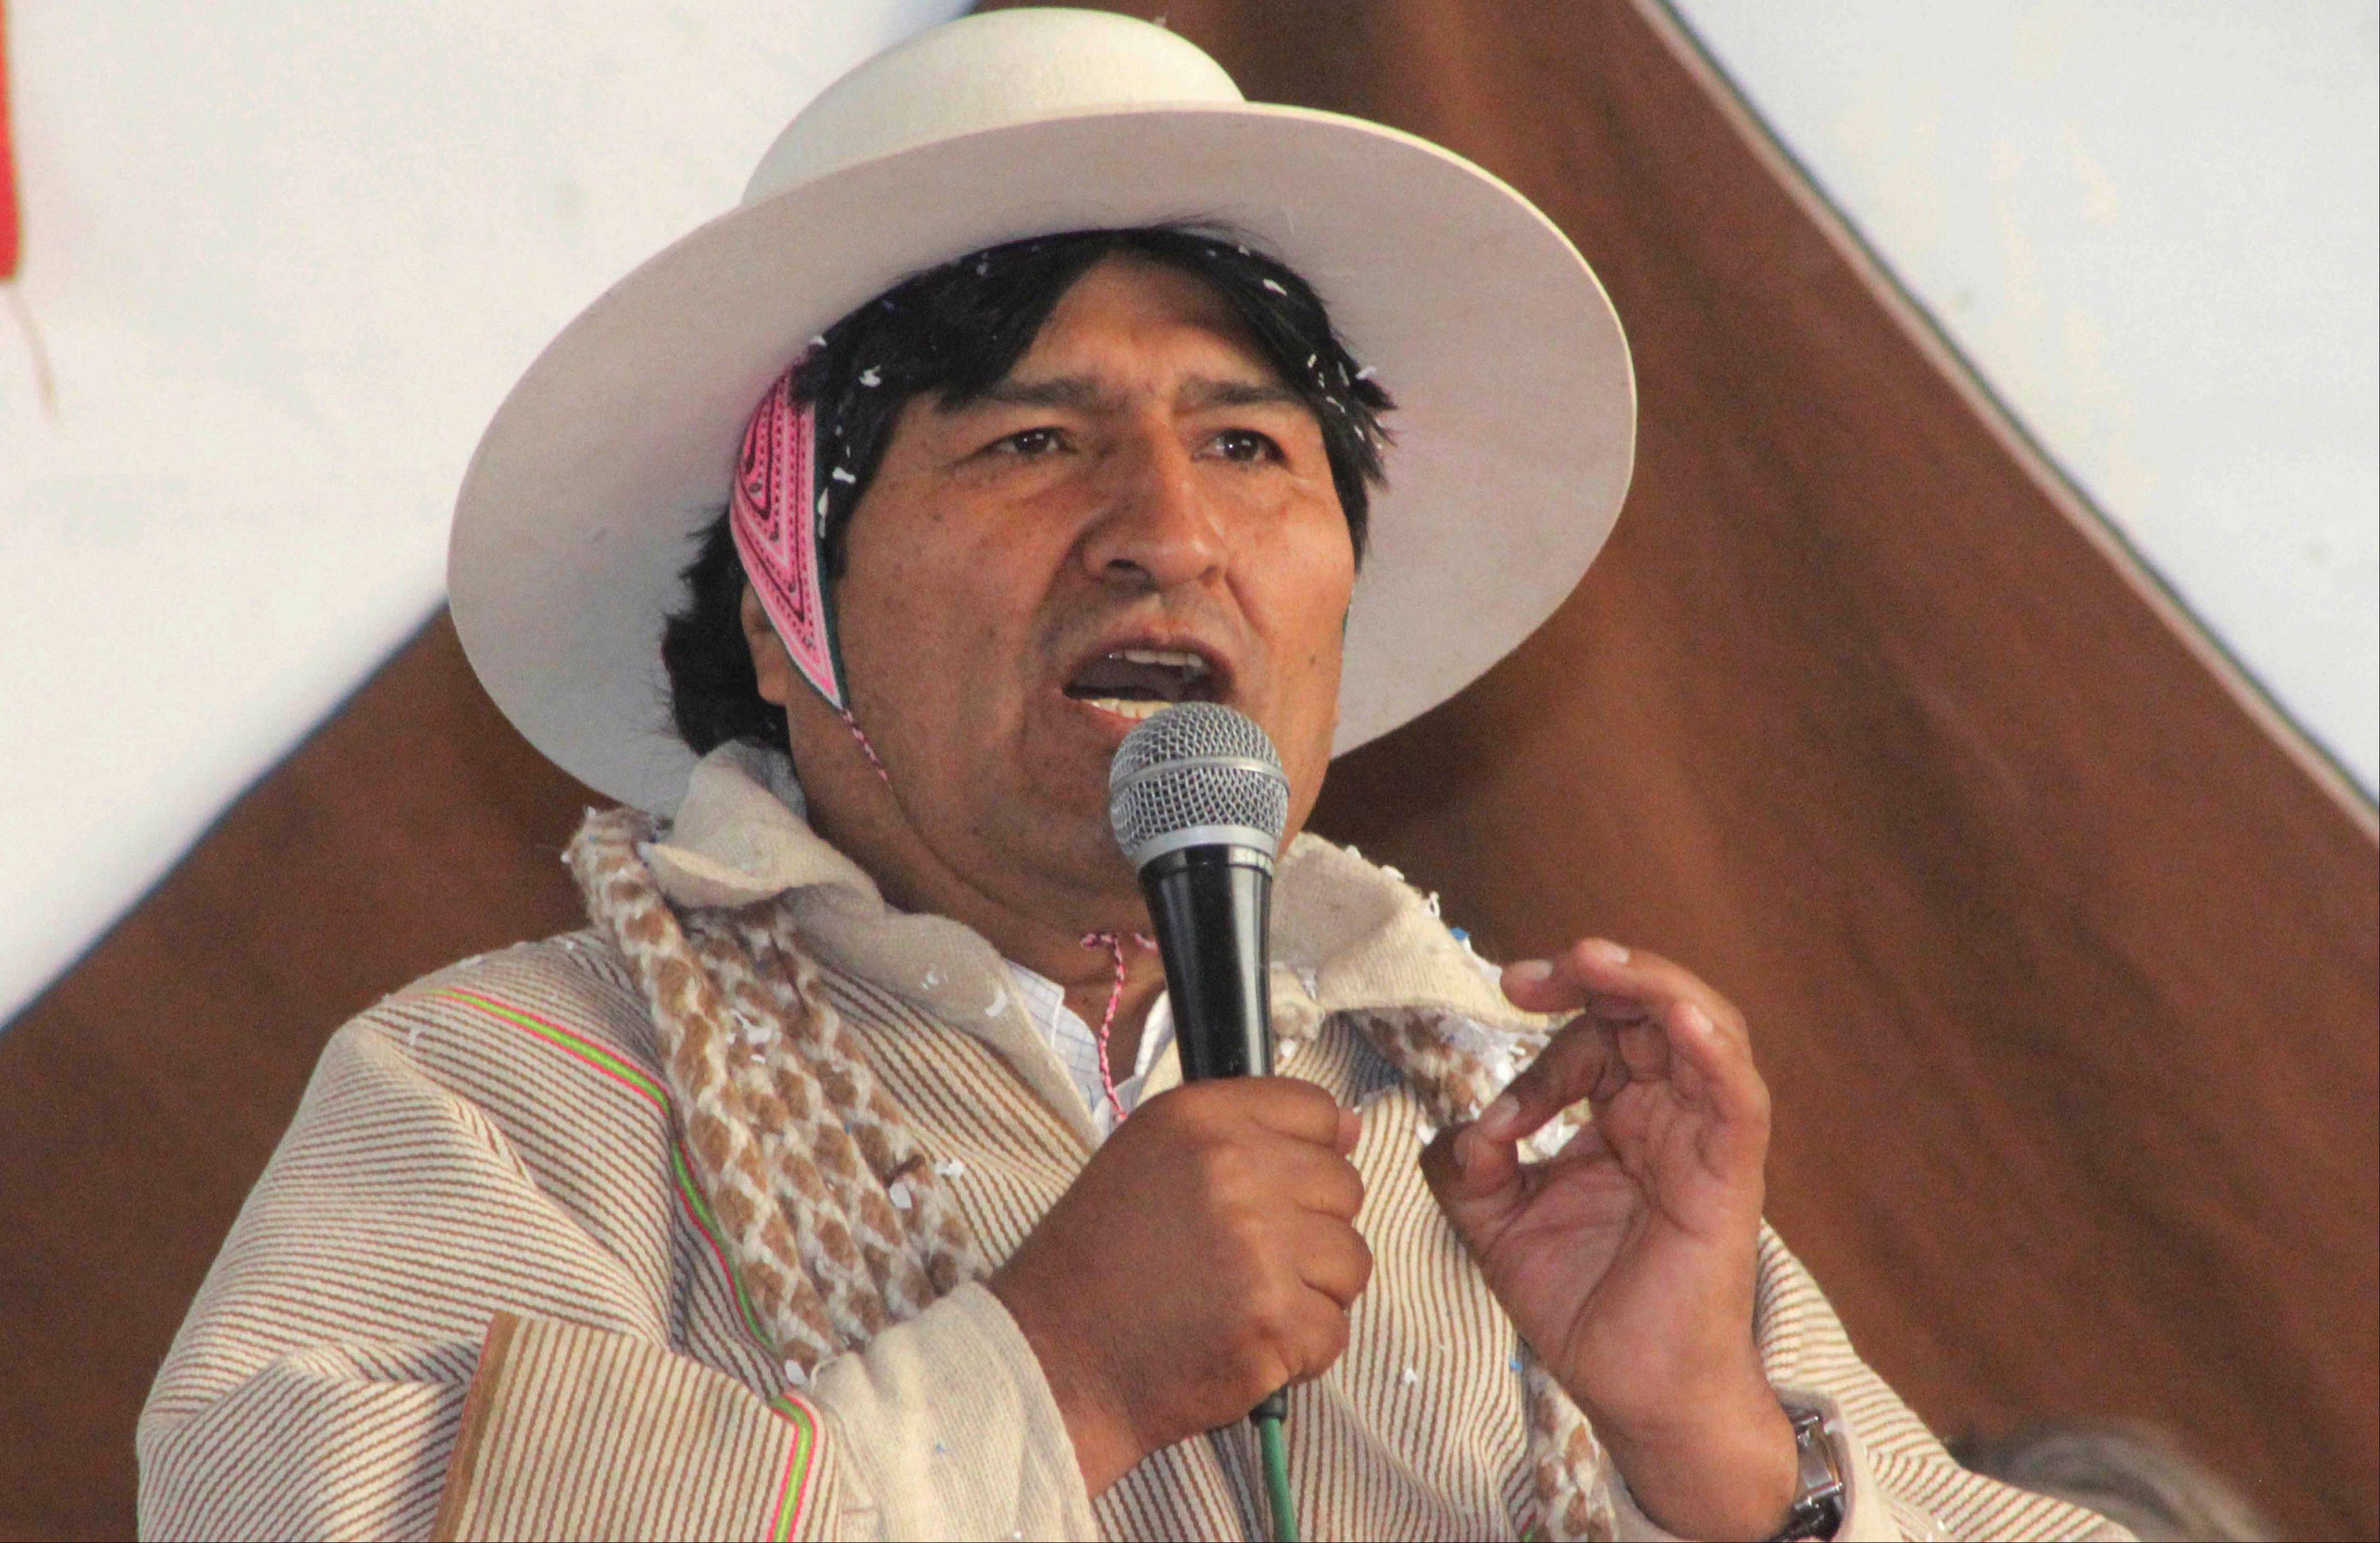 In this photo released by the state news agency, Bolivian Information Agency, Bolivia's President Evo Morales speaks during a meeting with Uru-Chipaya indigenous in Chipaya, Bolivia, Saturday. Morales announced NSA leaker Edward Snowden is welcome in Bolivia.